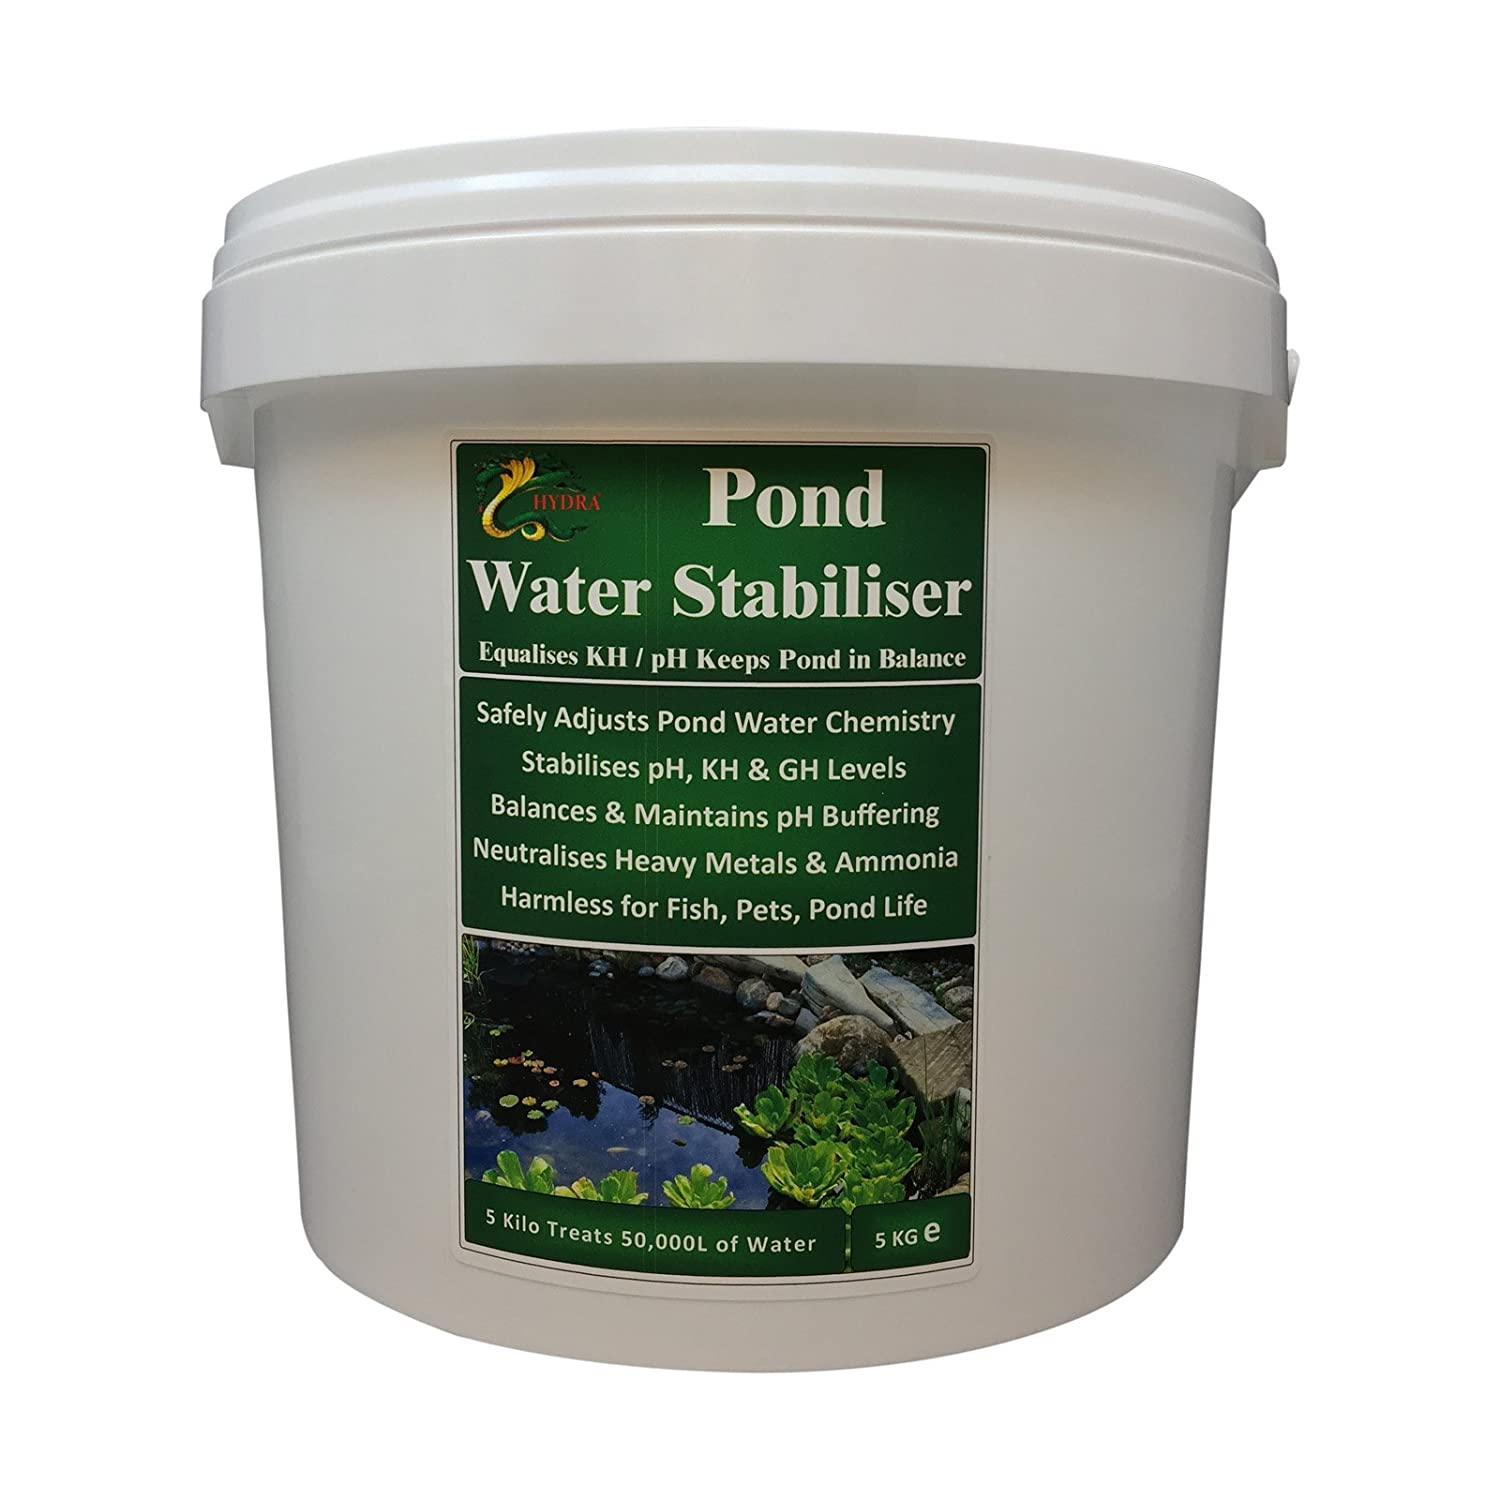 HYDRA POND WATER STABILISER 5KG Equalises KH, pH & GH Levels to Balance (5Kg Treats Up to 50,000L) Of Water Hydra International Ltd